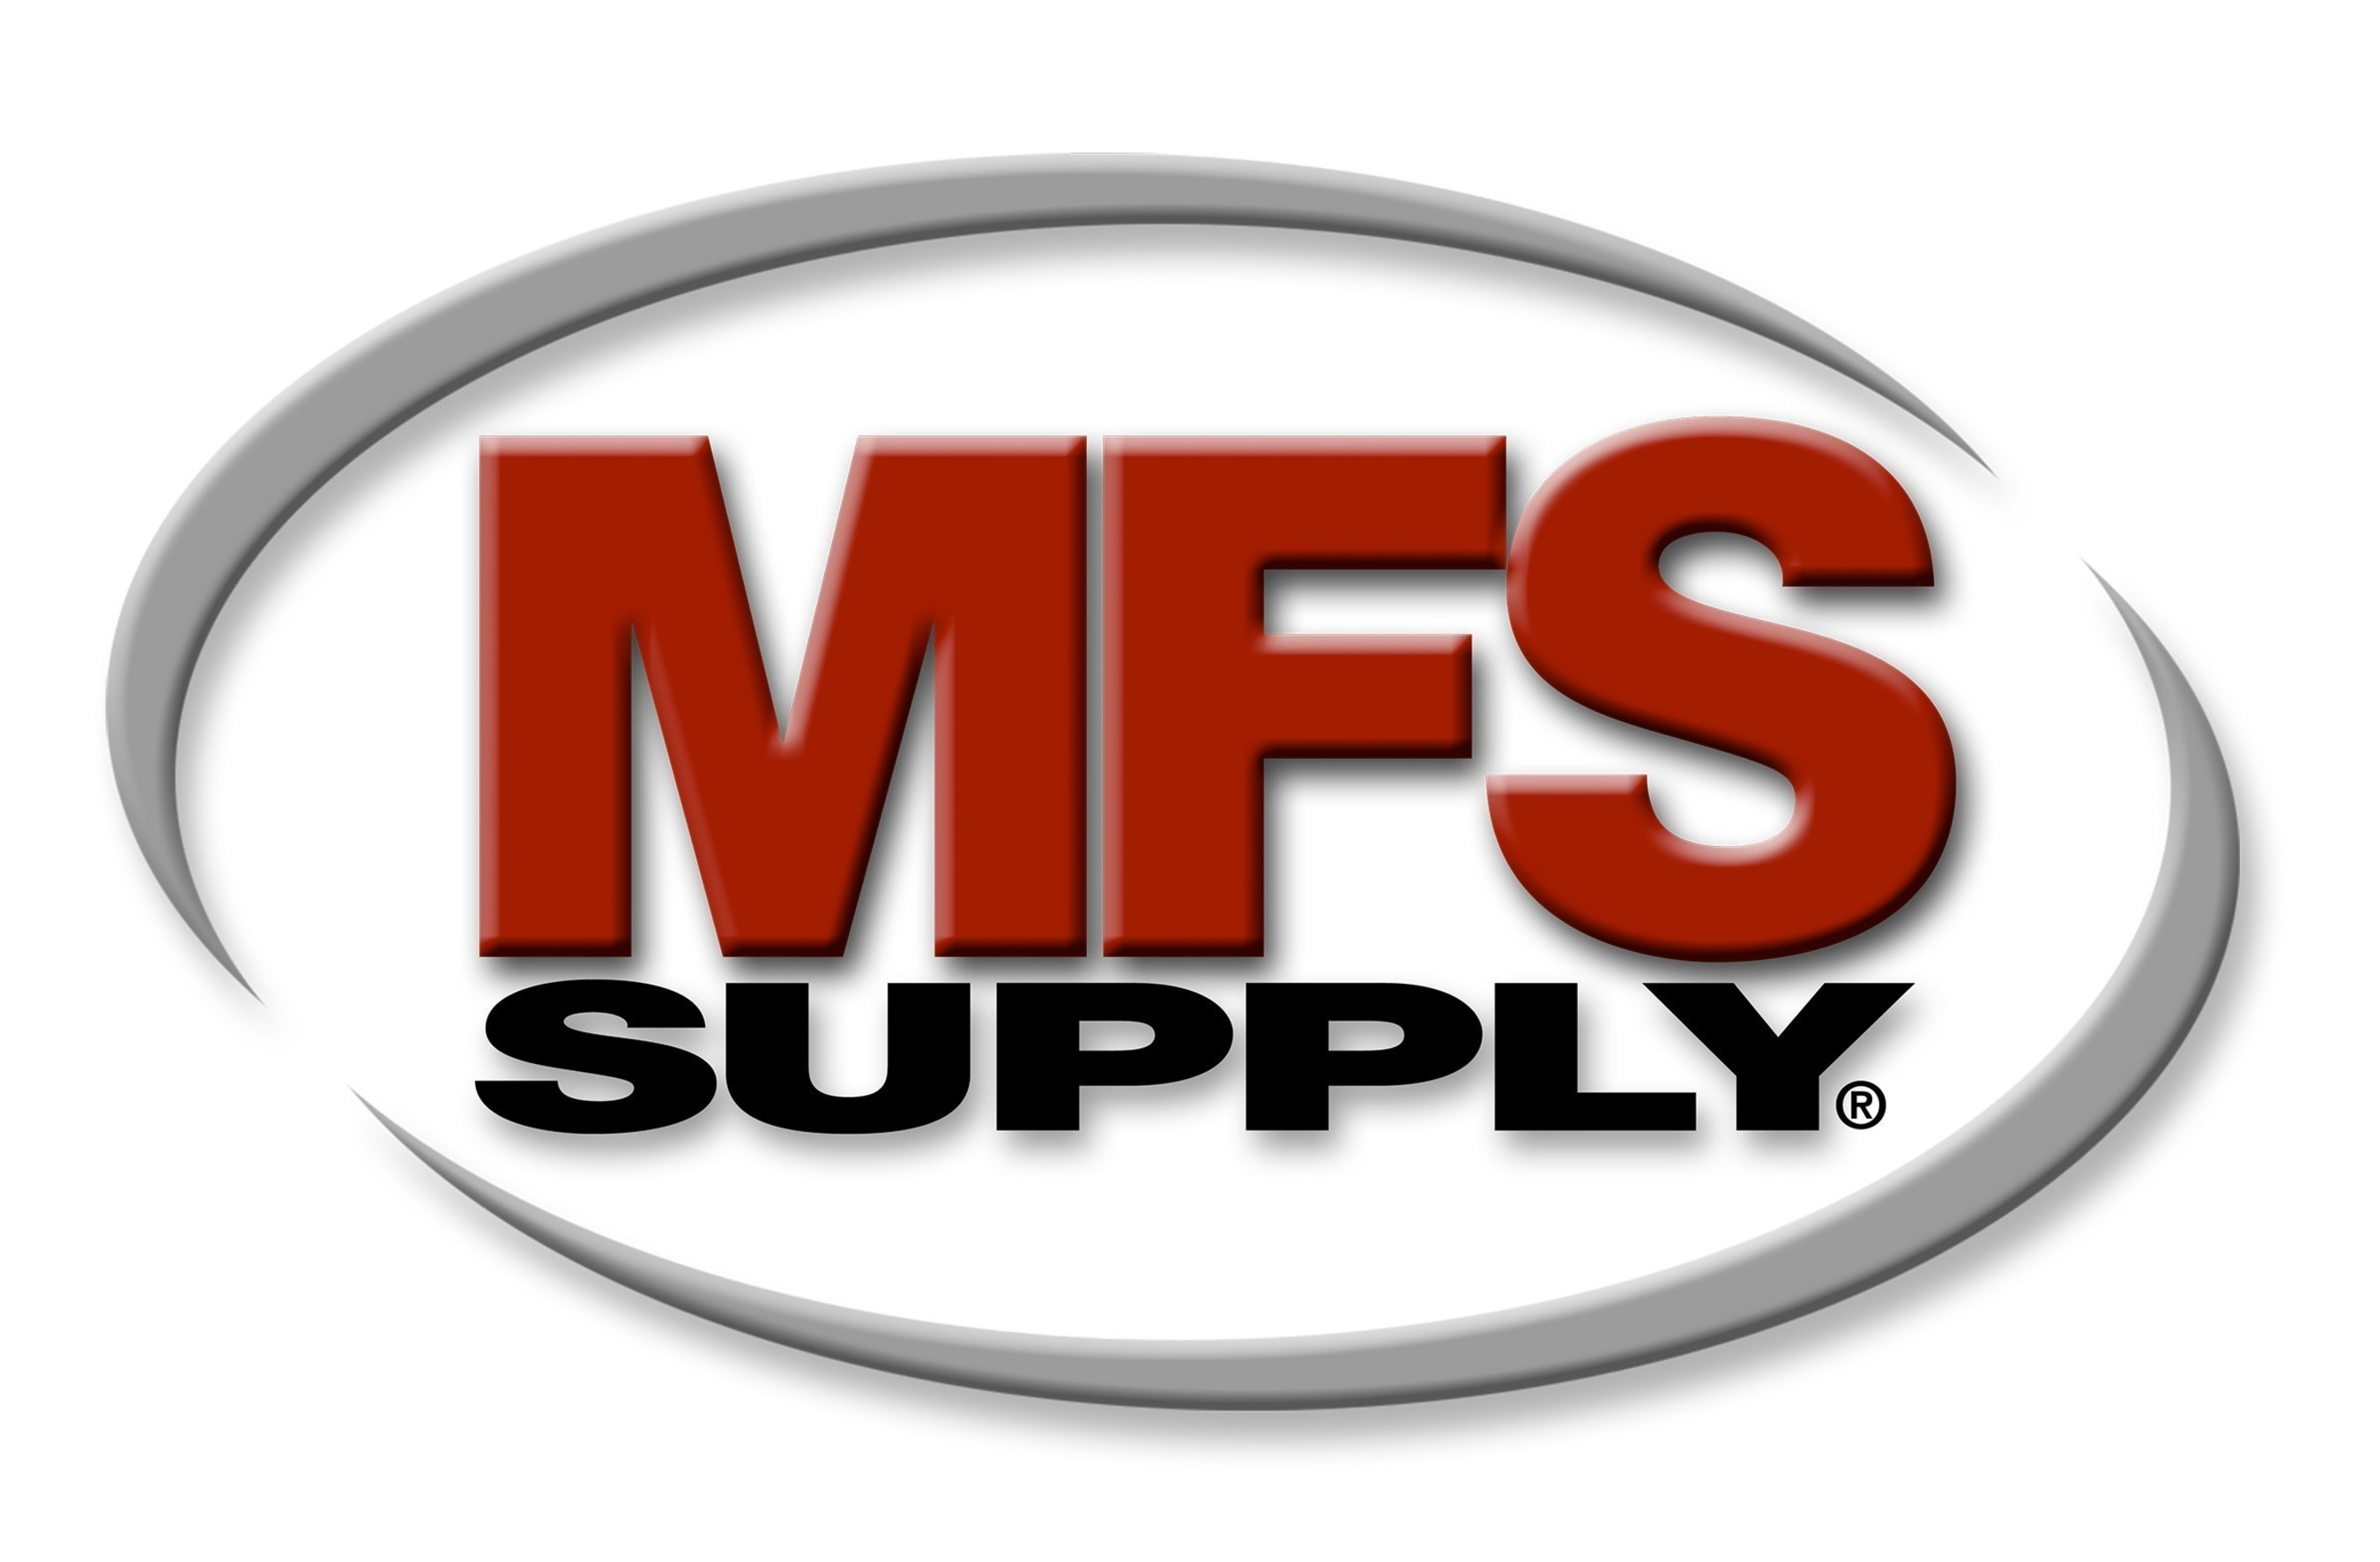 MFS Supply is a fast-growing, award winning national distribution company in the property preservation, multifamily, and renovation markets.  Headquartered in Solon, Ohio.